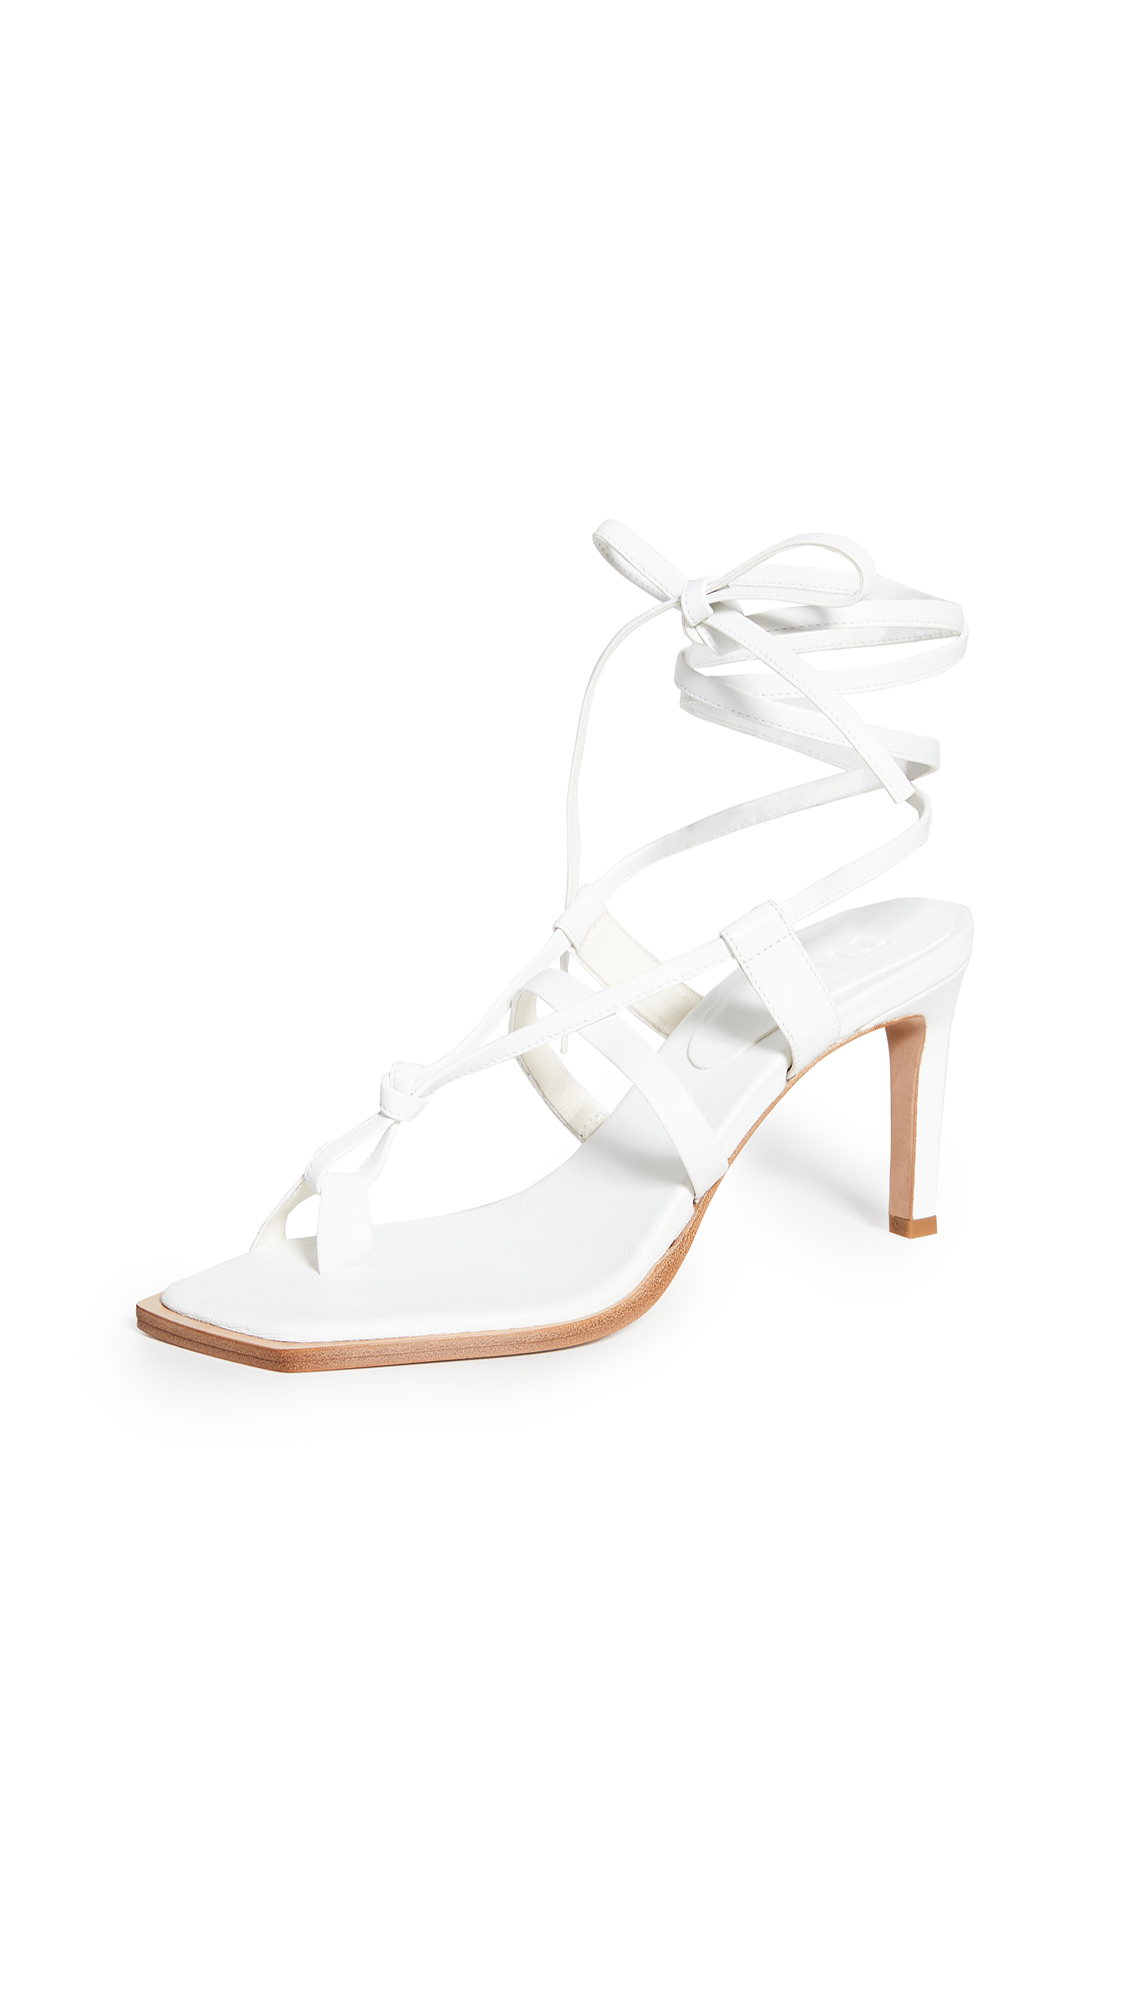 Tibi Ryo Sandals – 50% Off Sale